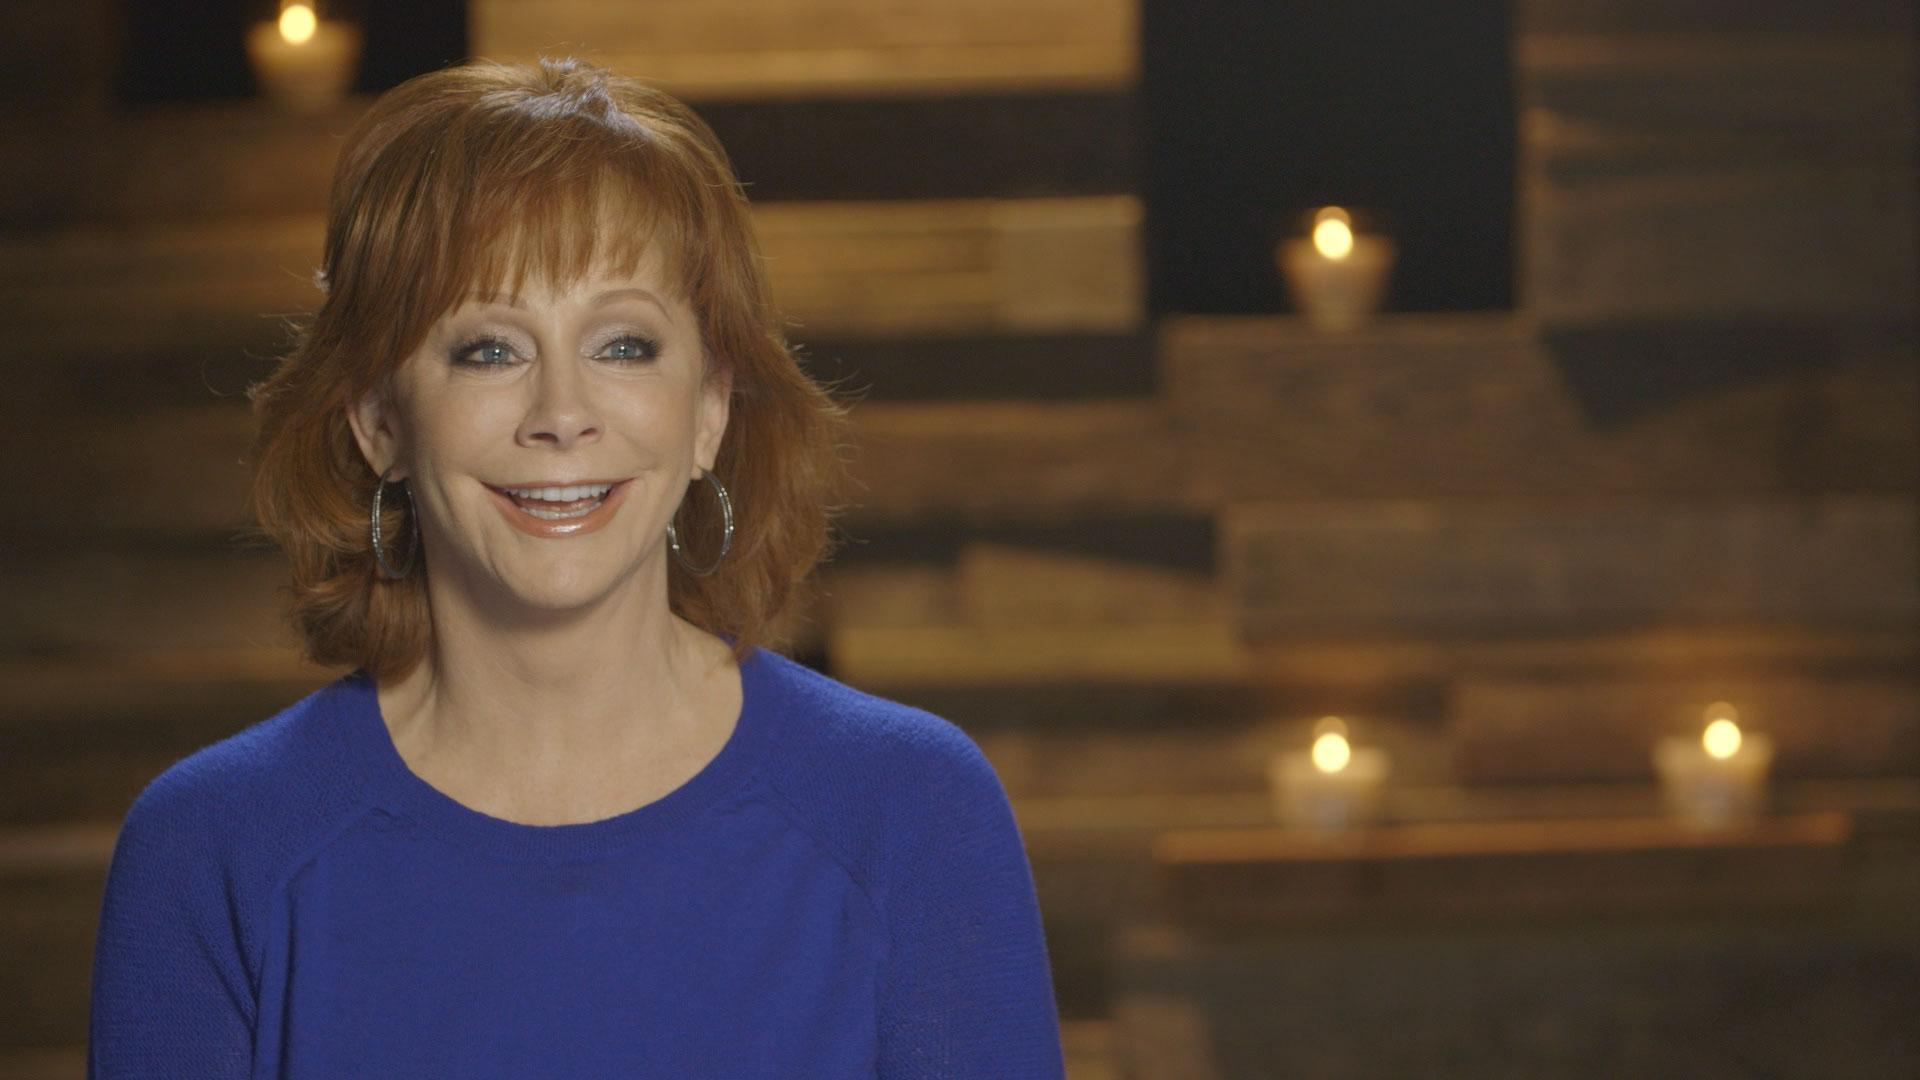 Reba McEntire's Thoughts On Life